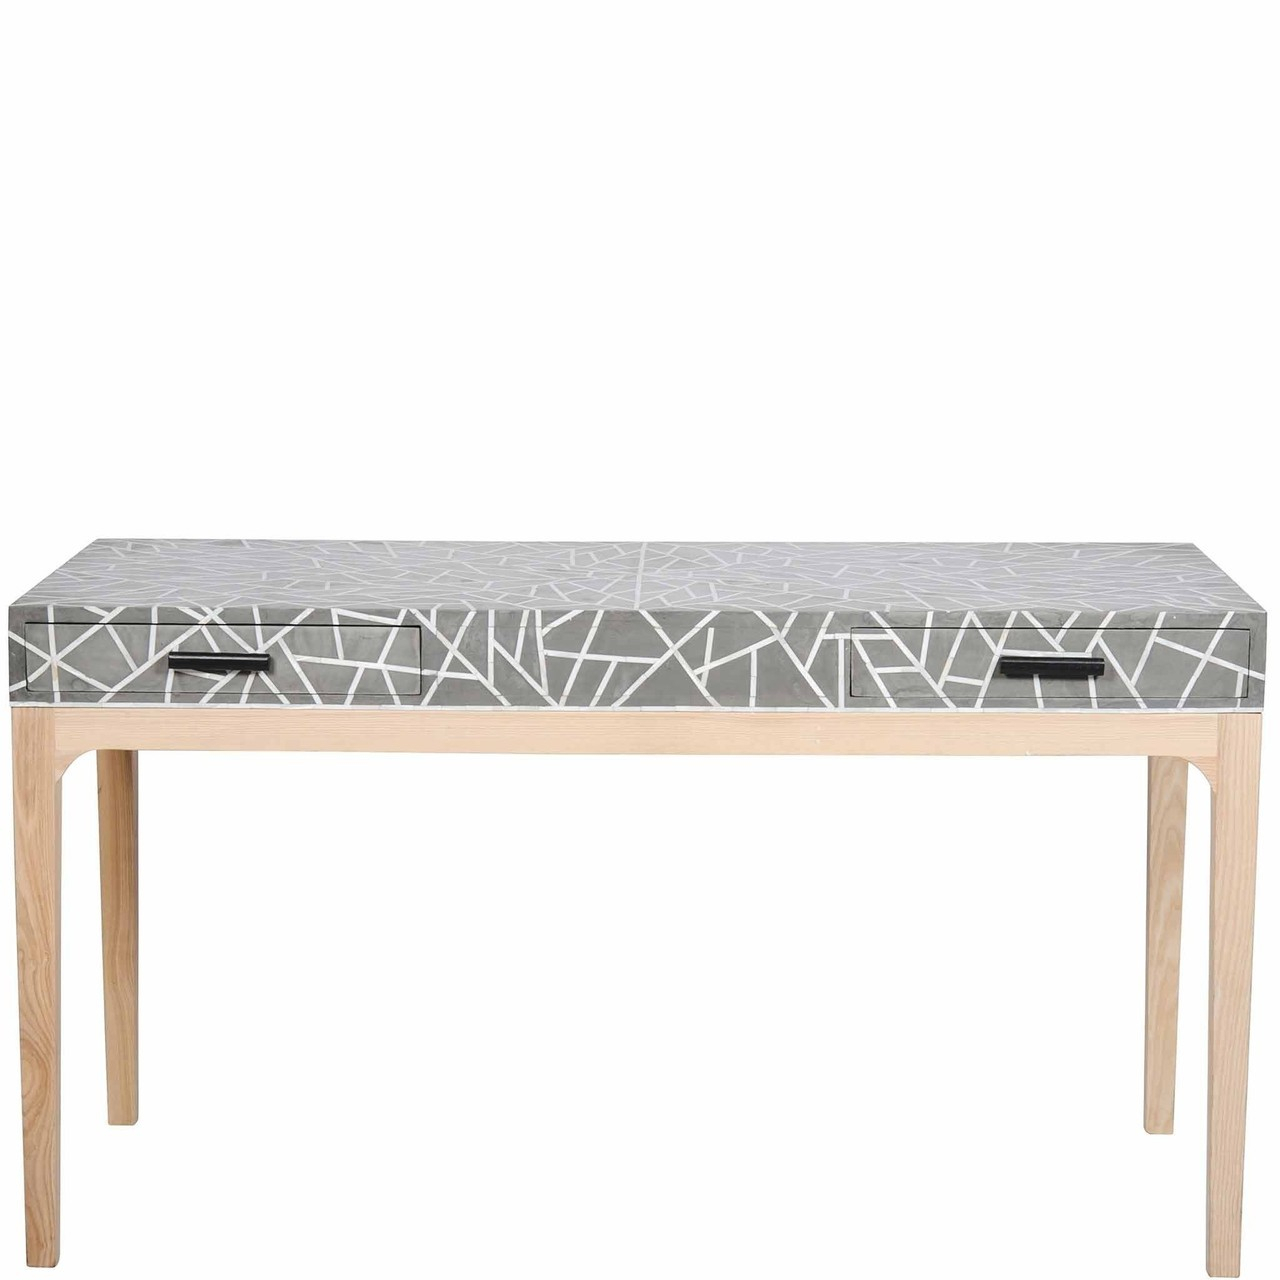 Console Table / Desks 1 Archives - Luxury Handicrafts | Bone Inlay within Archive Grey Console Tables (Image 6 of 30)